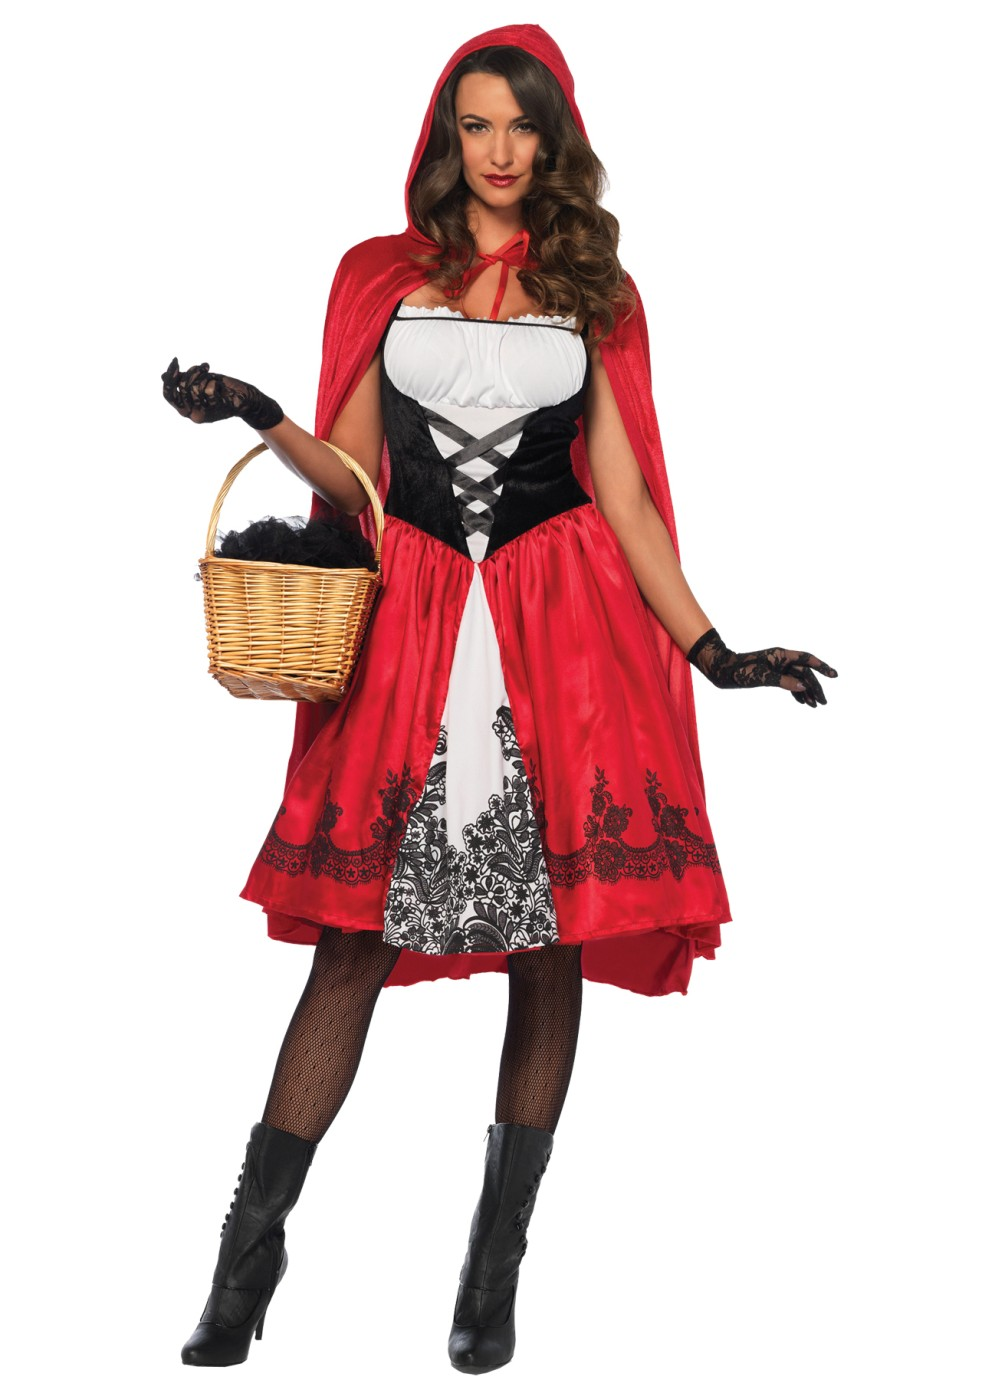 red riding hood women costume sexy costumes. Black Bedroom Furniture Sets. Home Design Ideas